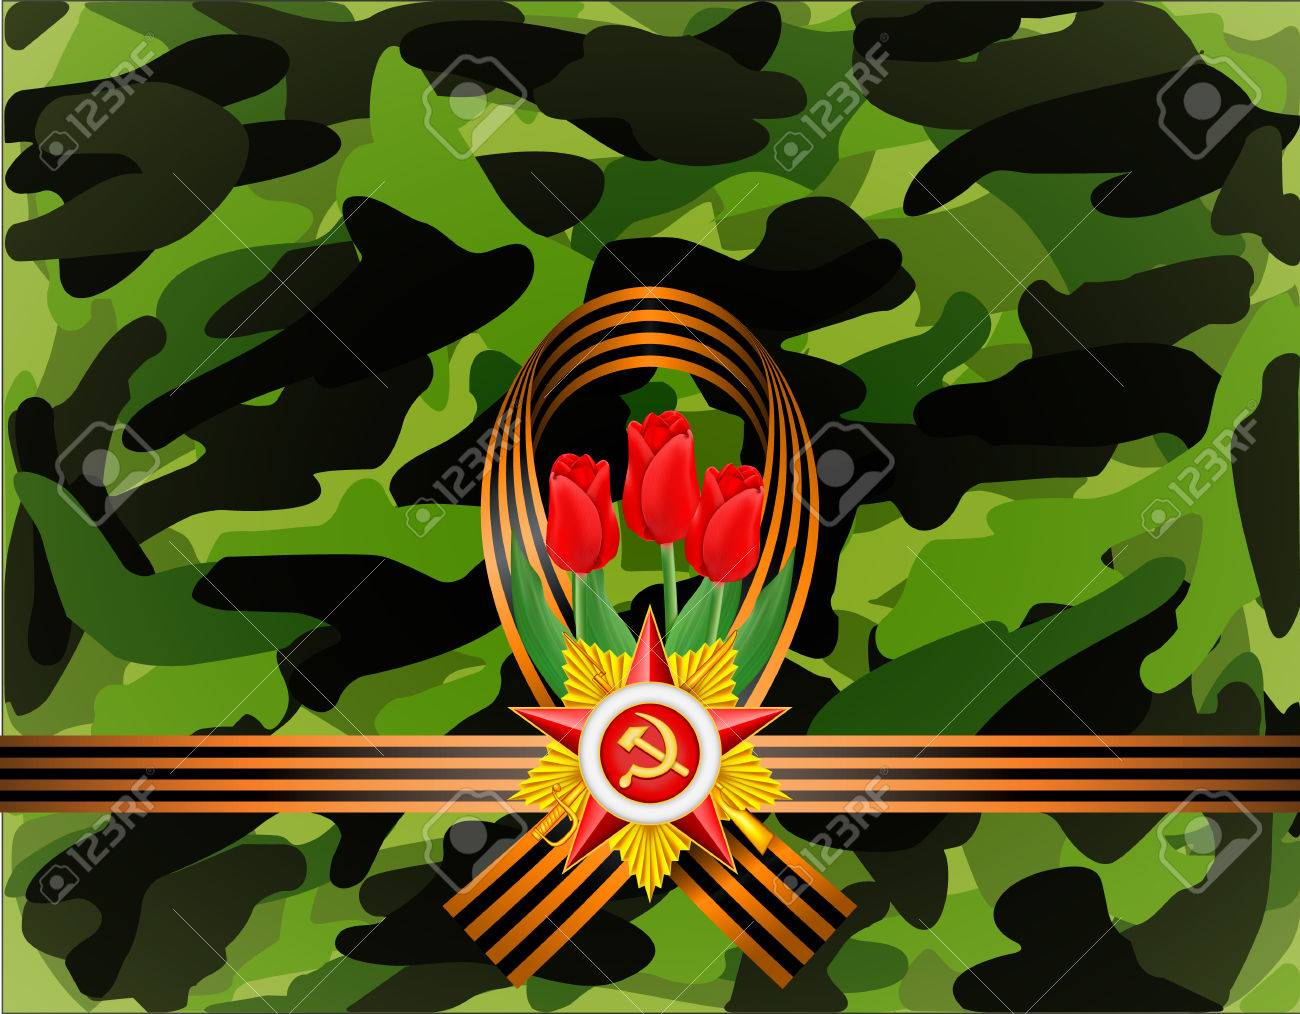 Greeting Card With Military Objects Related To Victory Day Royalty